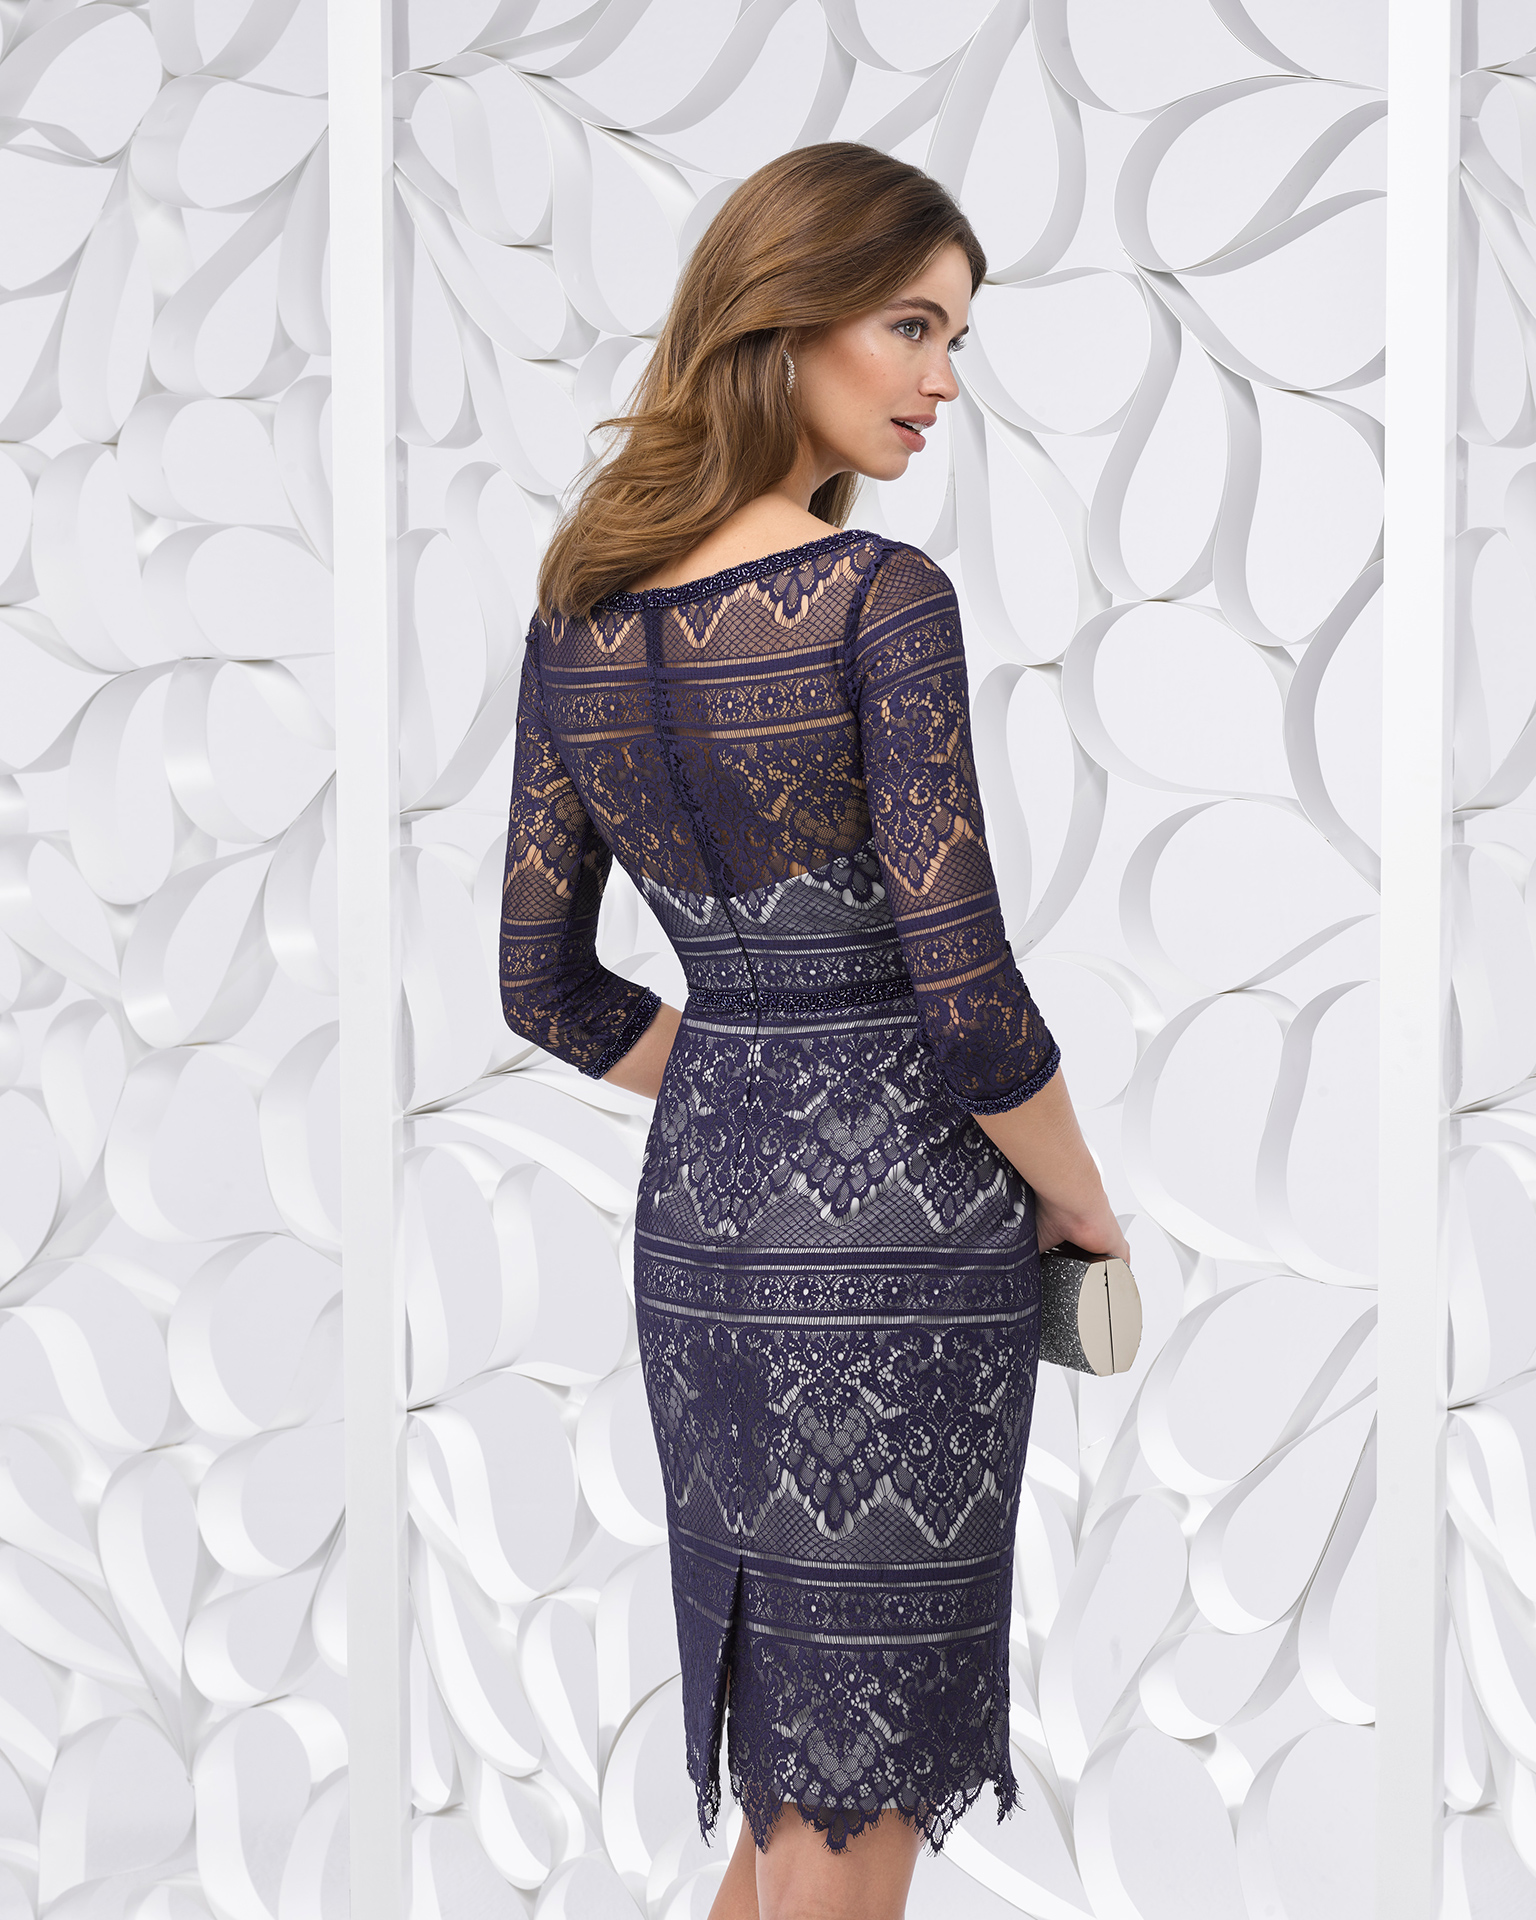 Short lace cocktail dress with three-quarter sleeves. Available in silver and navy blue/silver. 2018 FIESTA AIRE BARCELONA Collection.